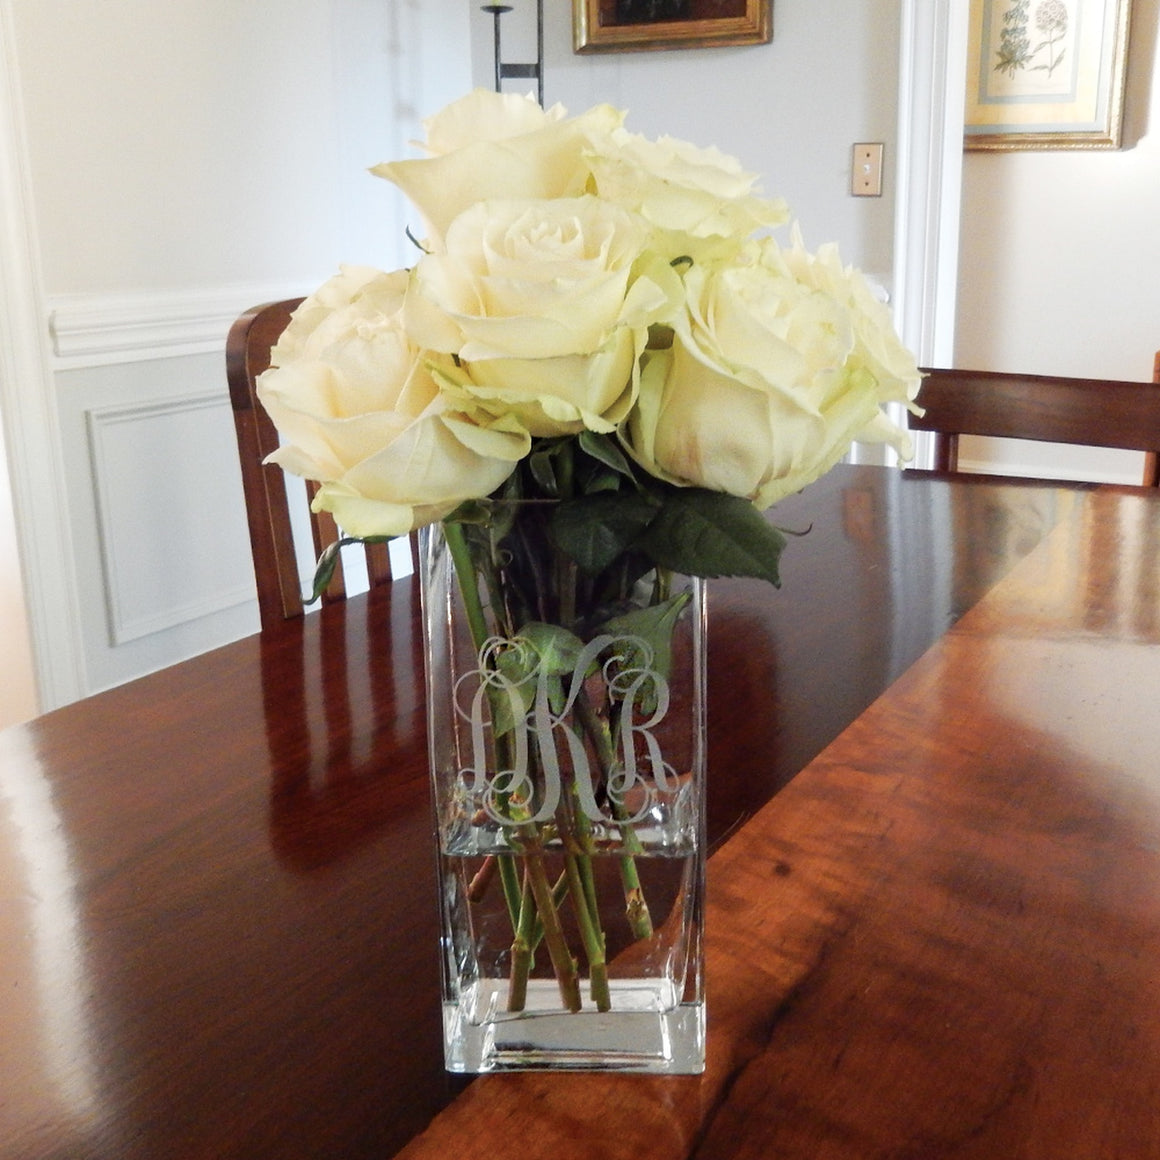 PERSONALIZED SQUARE VASE - 7 1/2""